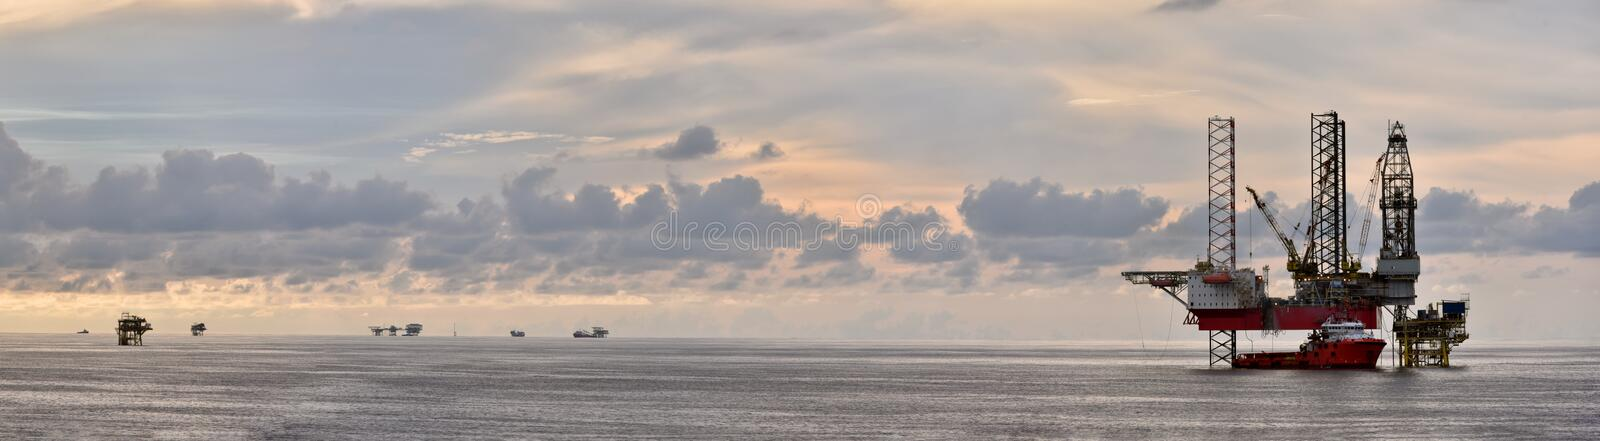 Oil rig platform at sea during sunset with beautiful cloud. Jack up rig and oil platform with supply vessel during sunset at sea with beautiful cloudy sky stock image